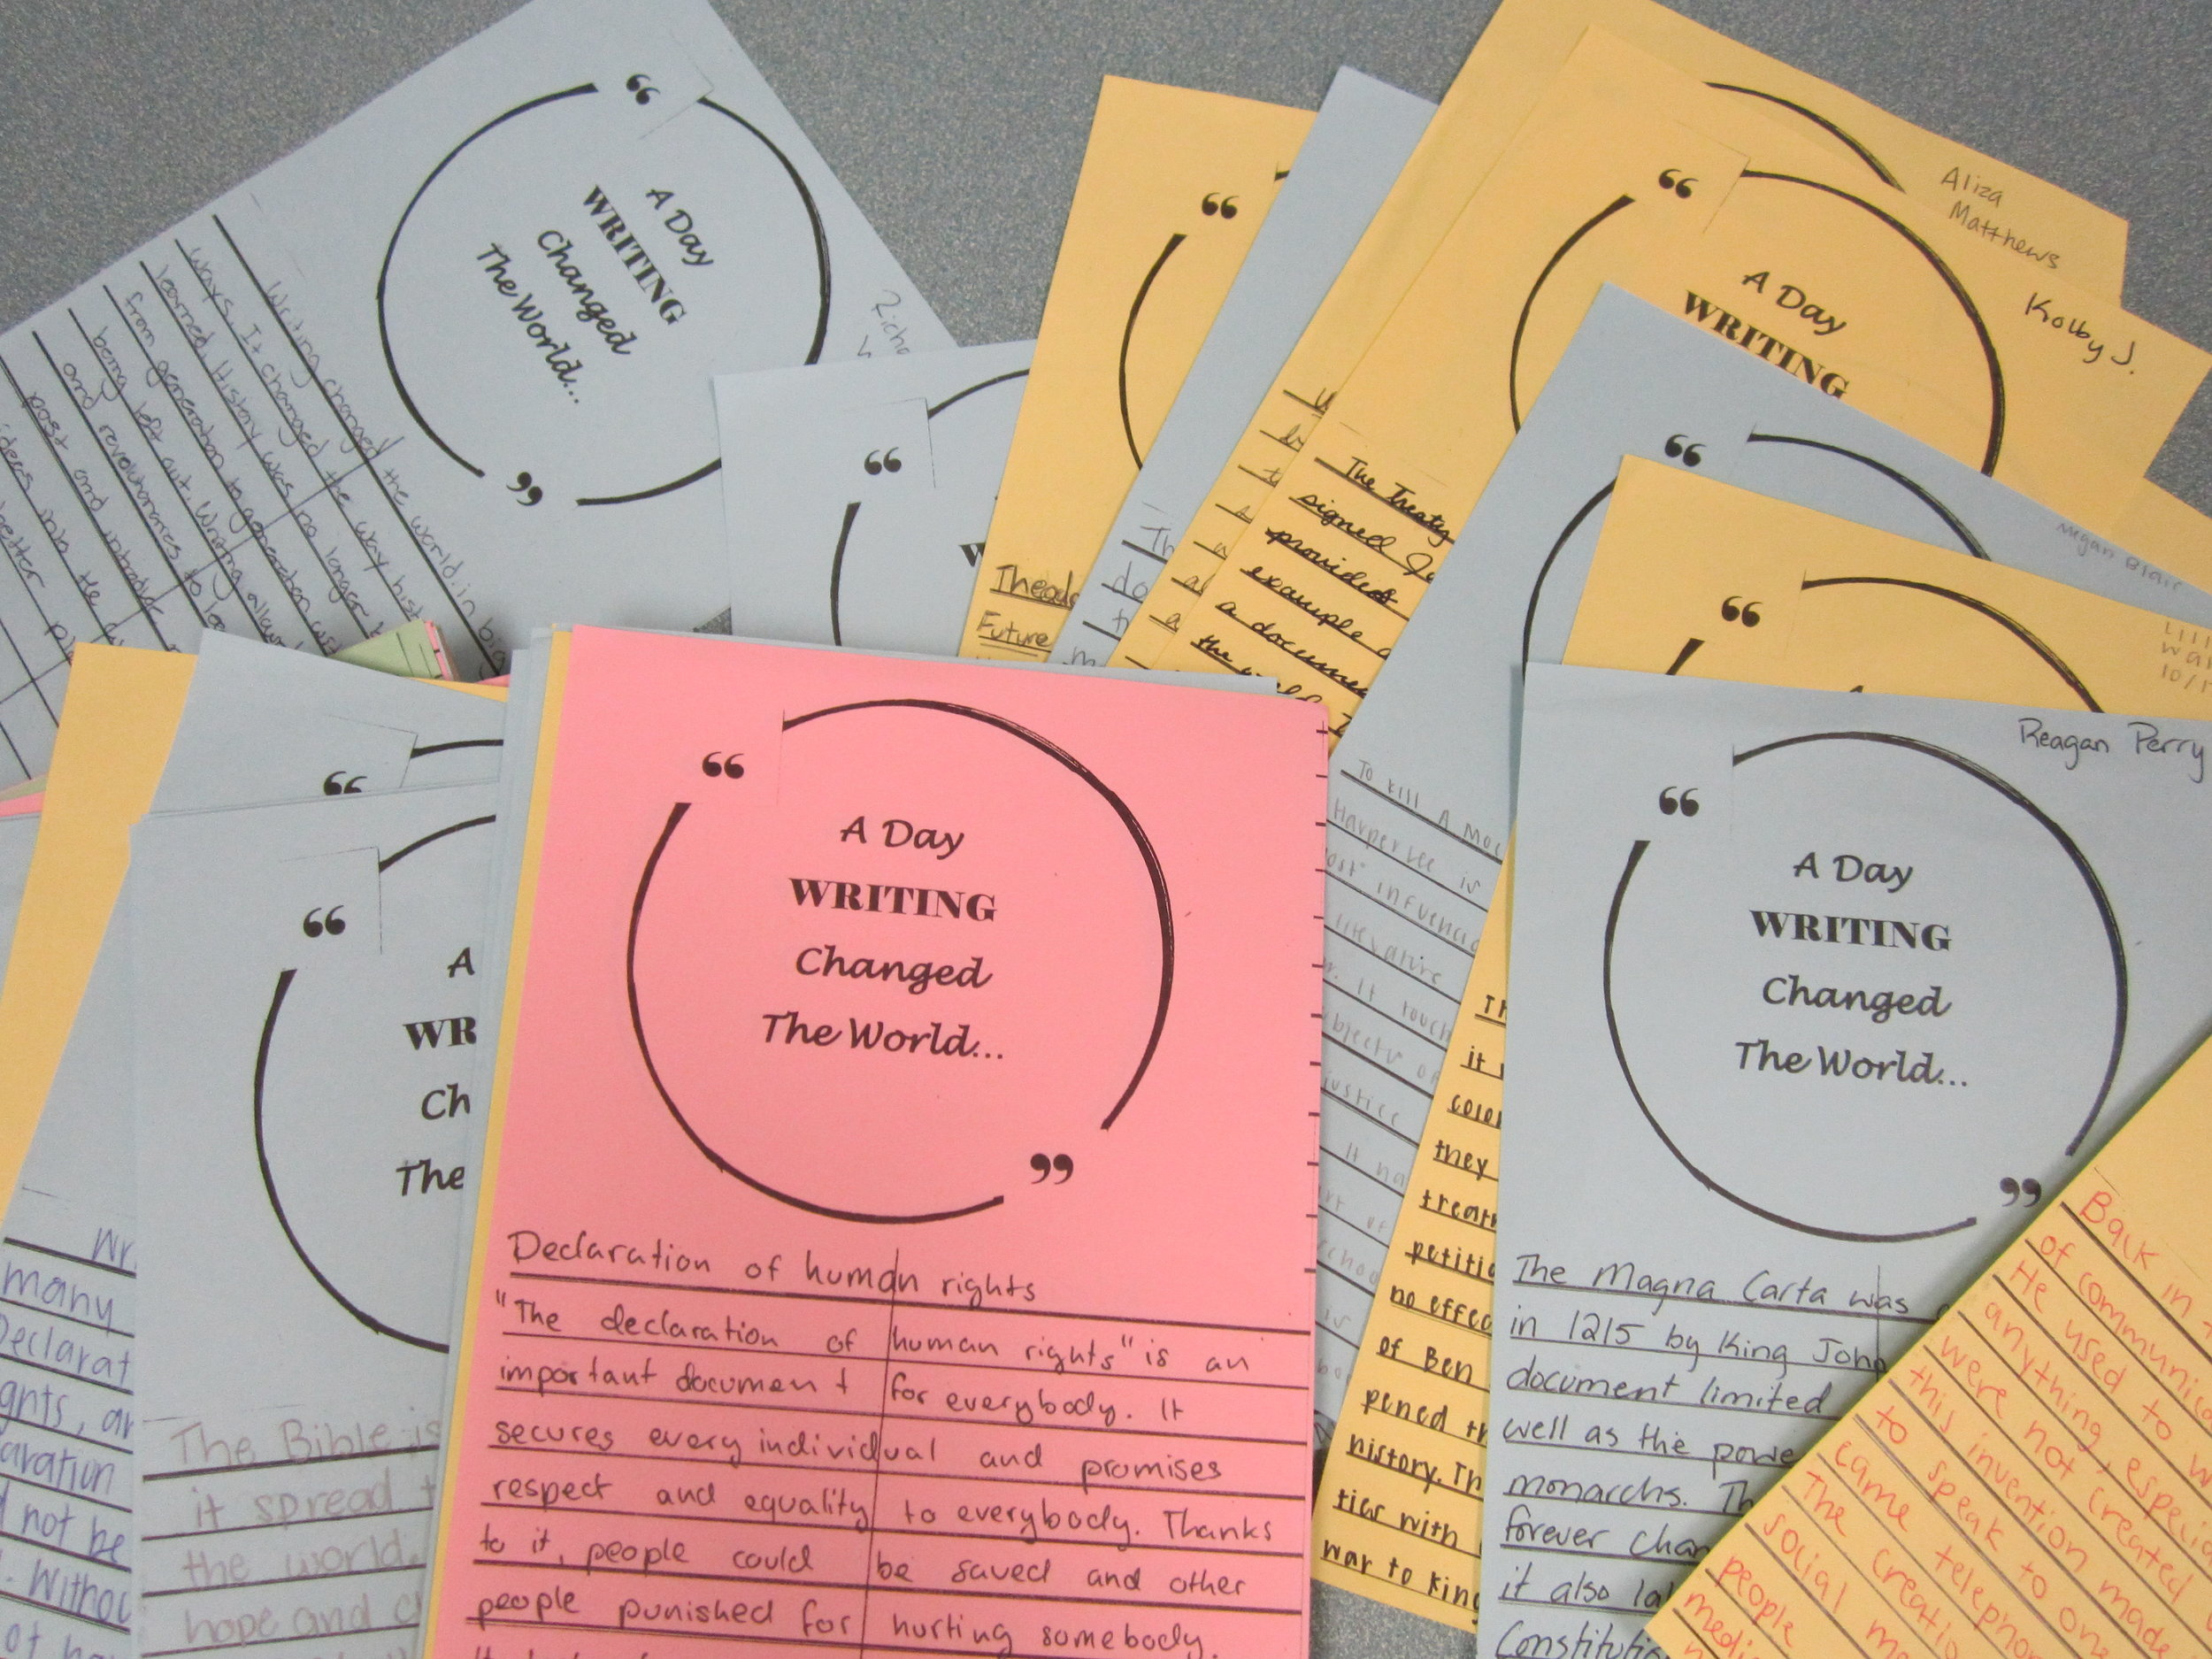 """APA middle and high school students wrote colorful responses to describe """"A Day Writing Changed the World."""""""